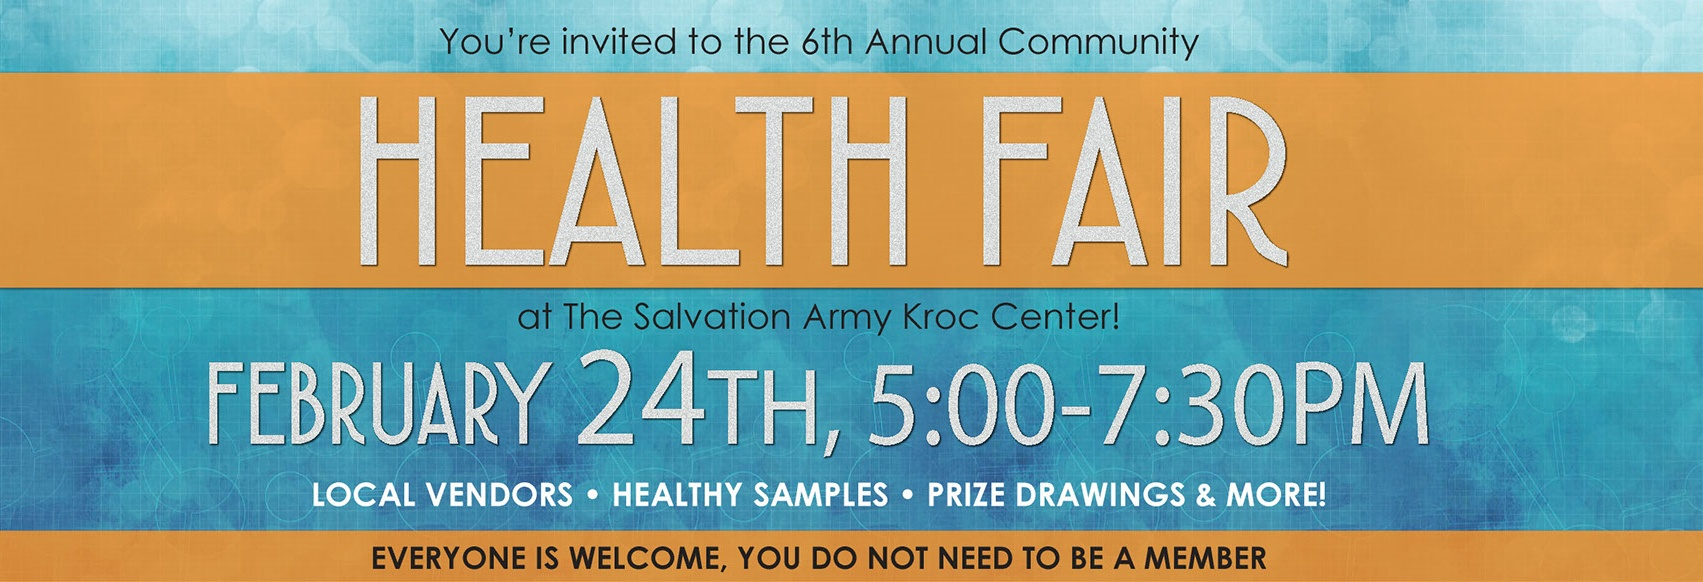 6th Annual Community Health Fair